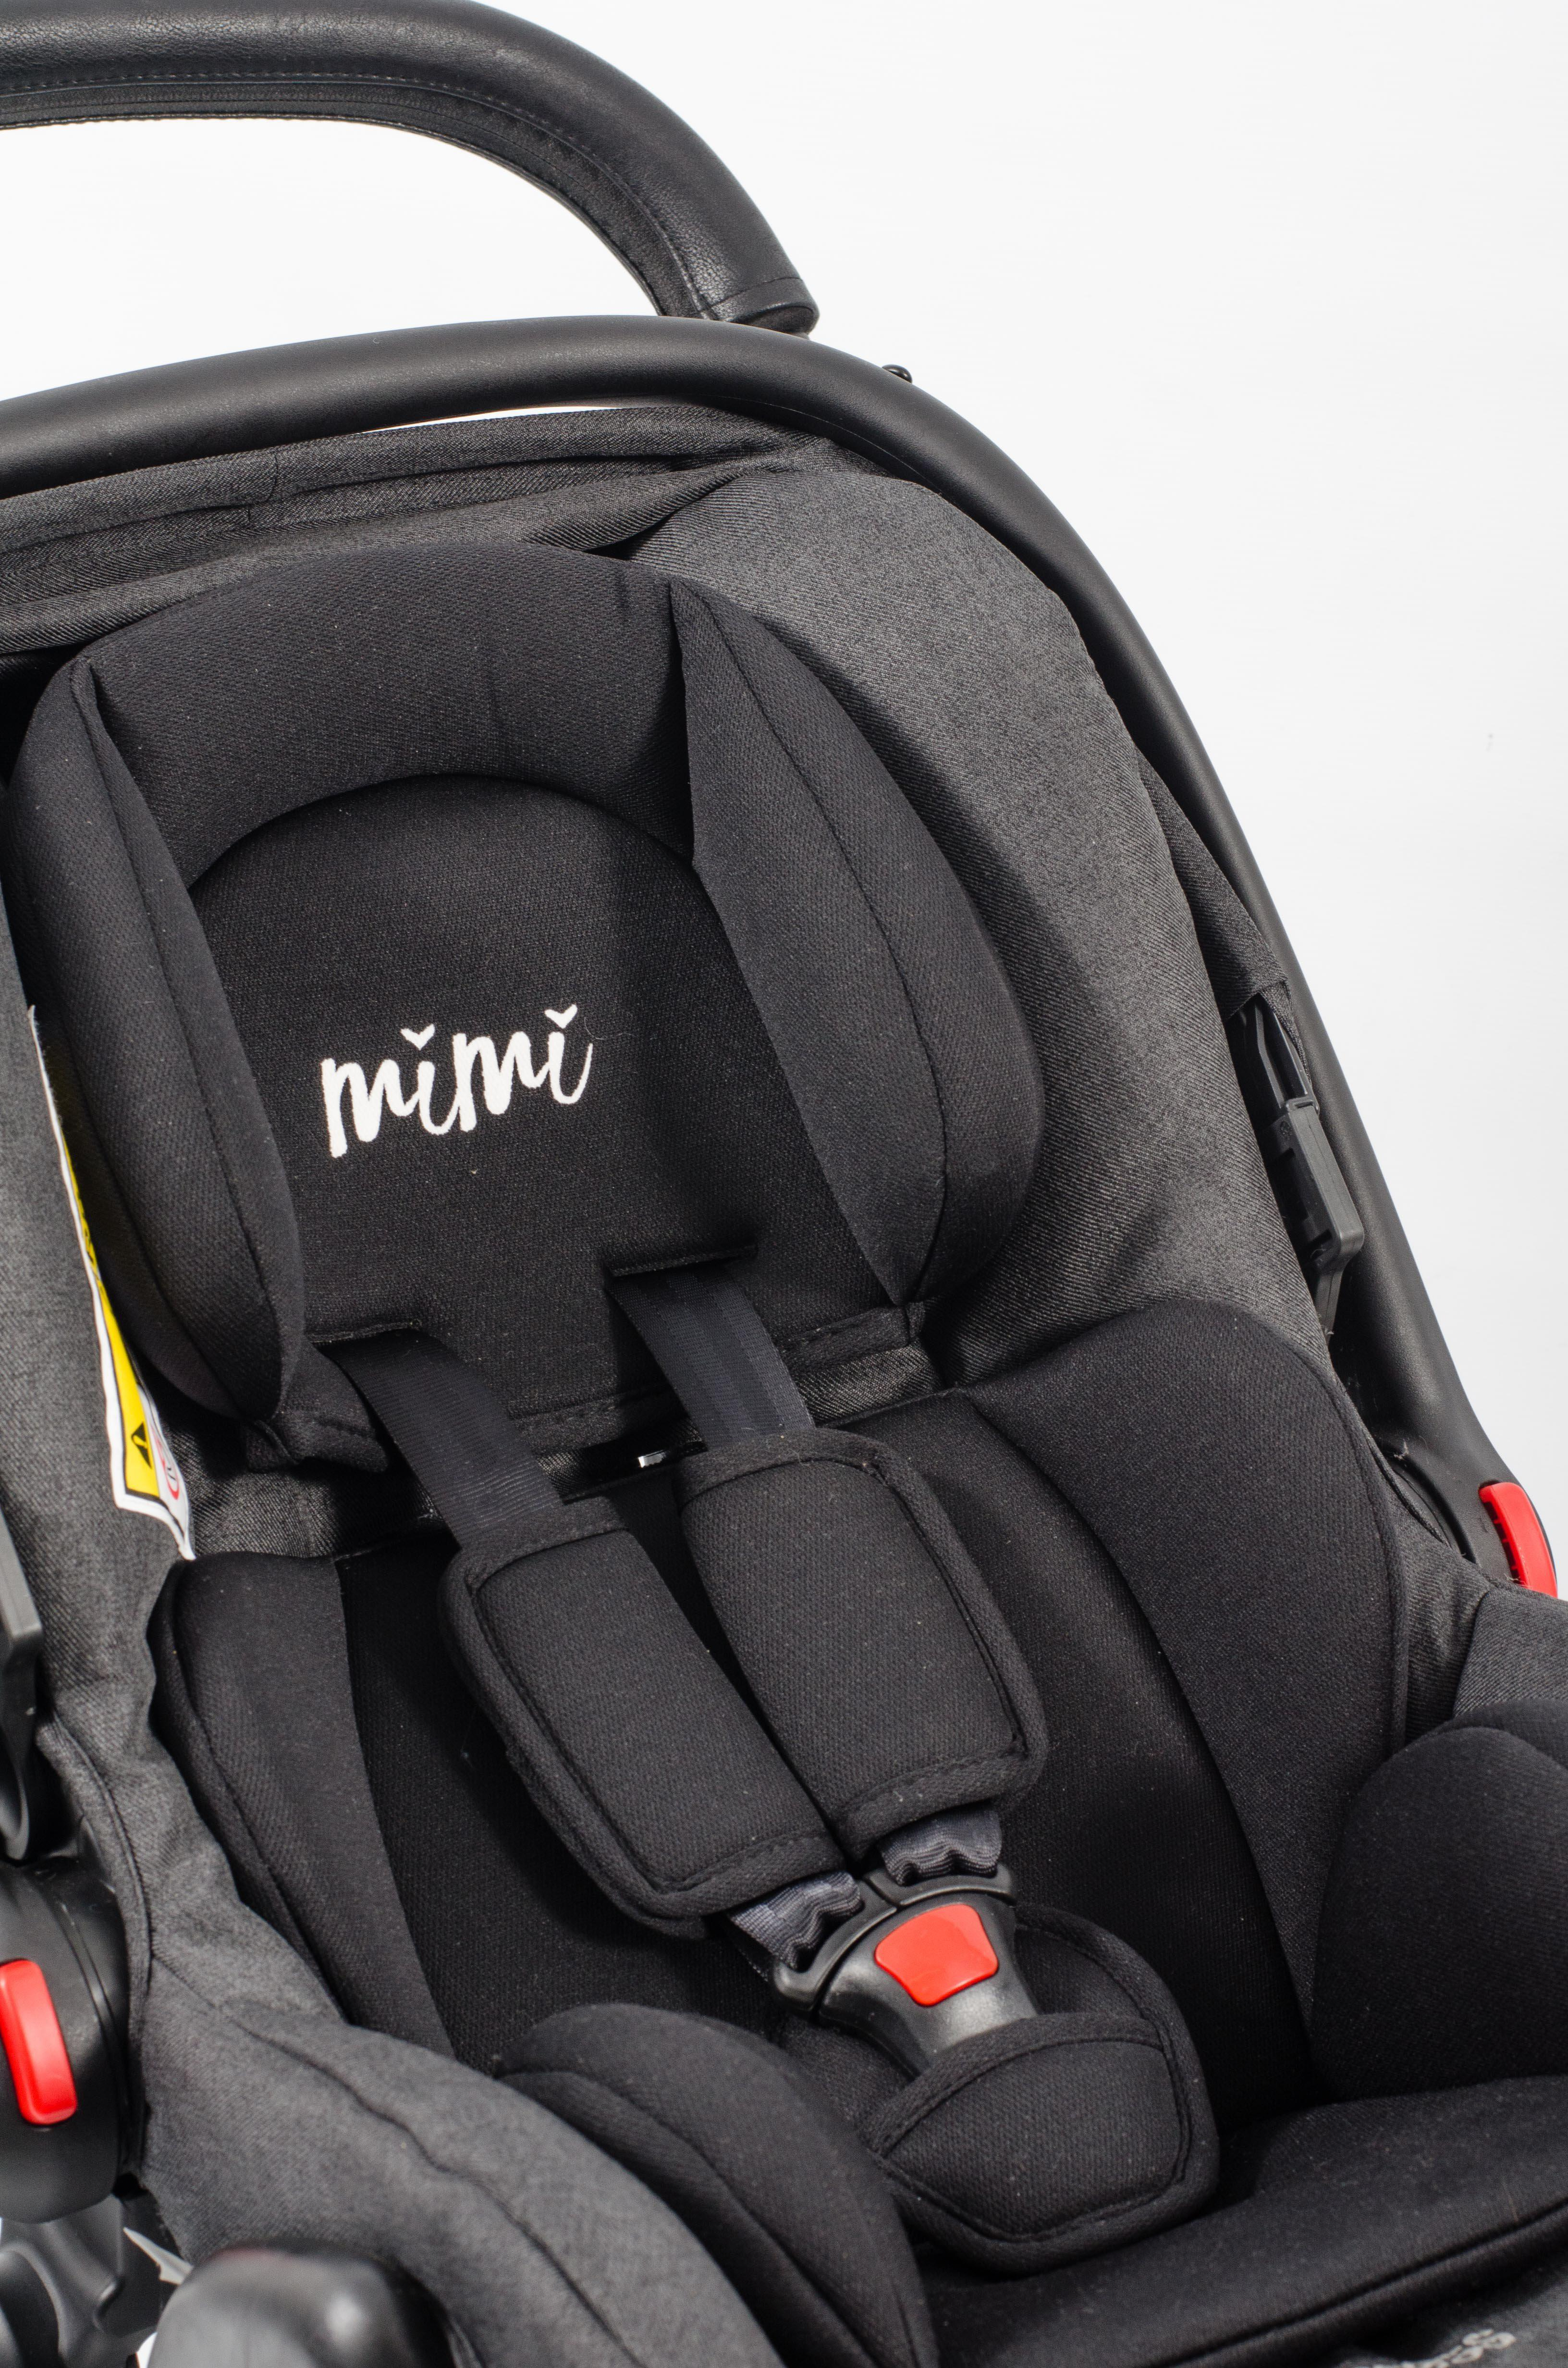 Best travel system in South Africa Mimi Baby